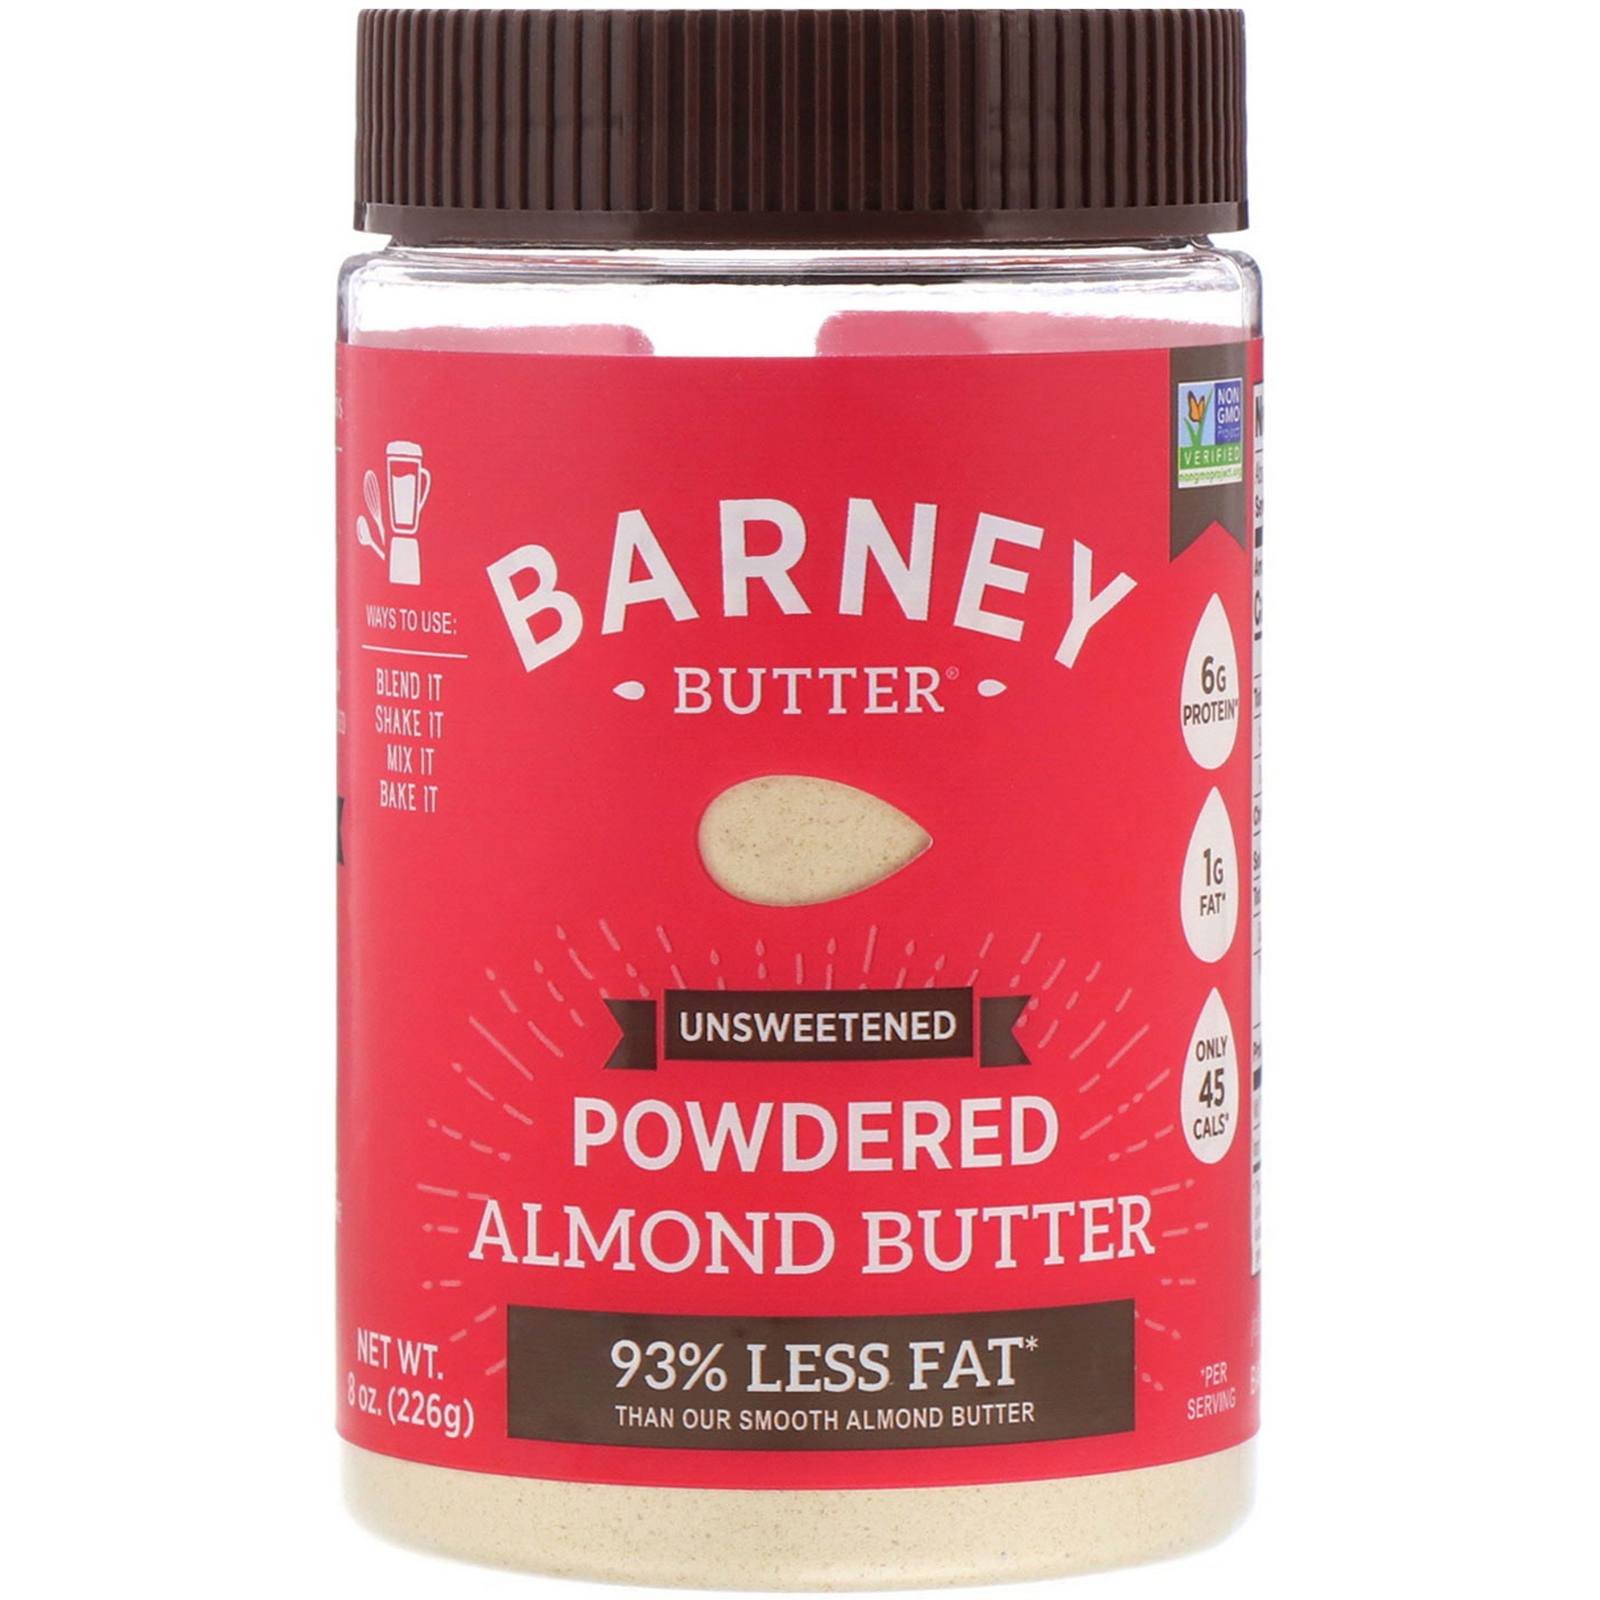 Barney Butter, Powdered Almond Butter, Unsweetened, 8 oz